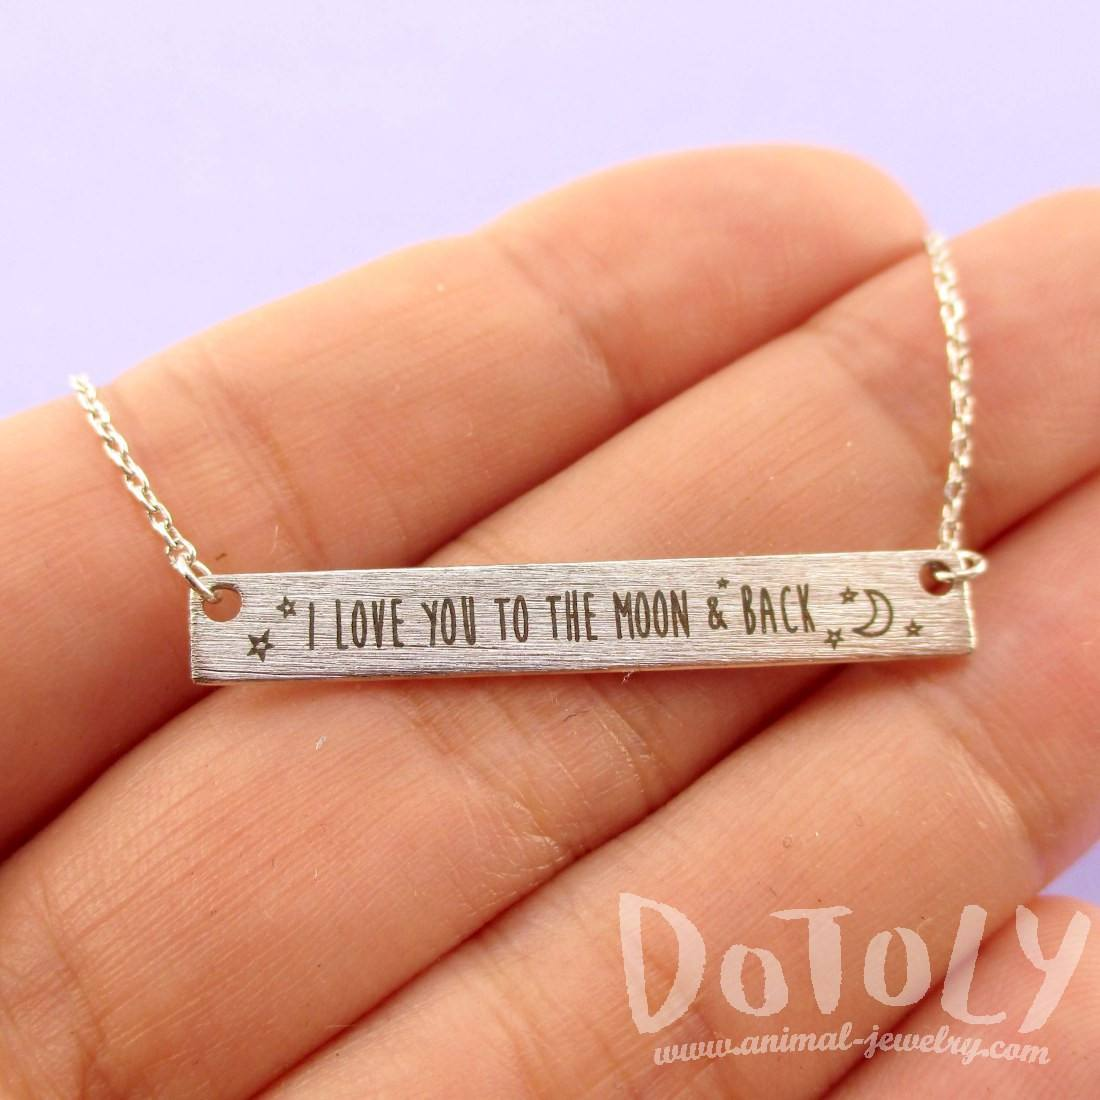 I Love You to the Moon & Back Love Quote Bar Pendant Necklace